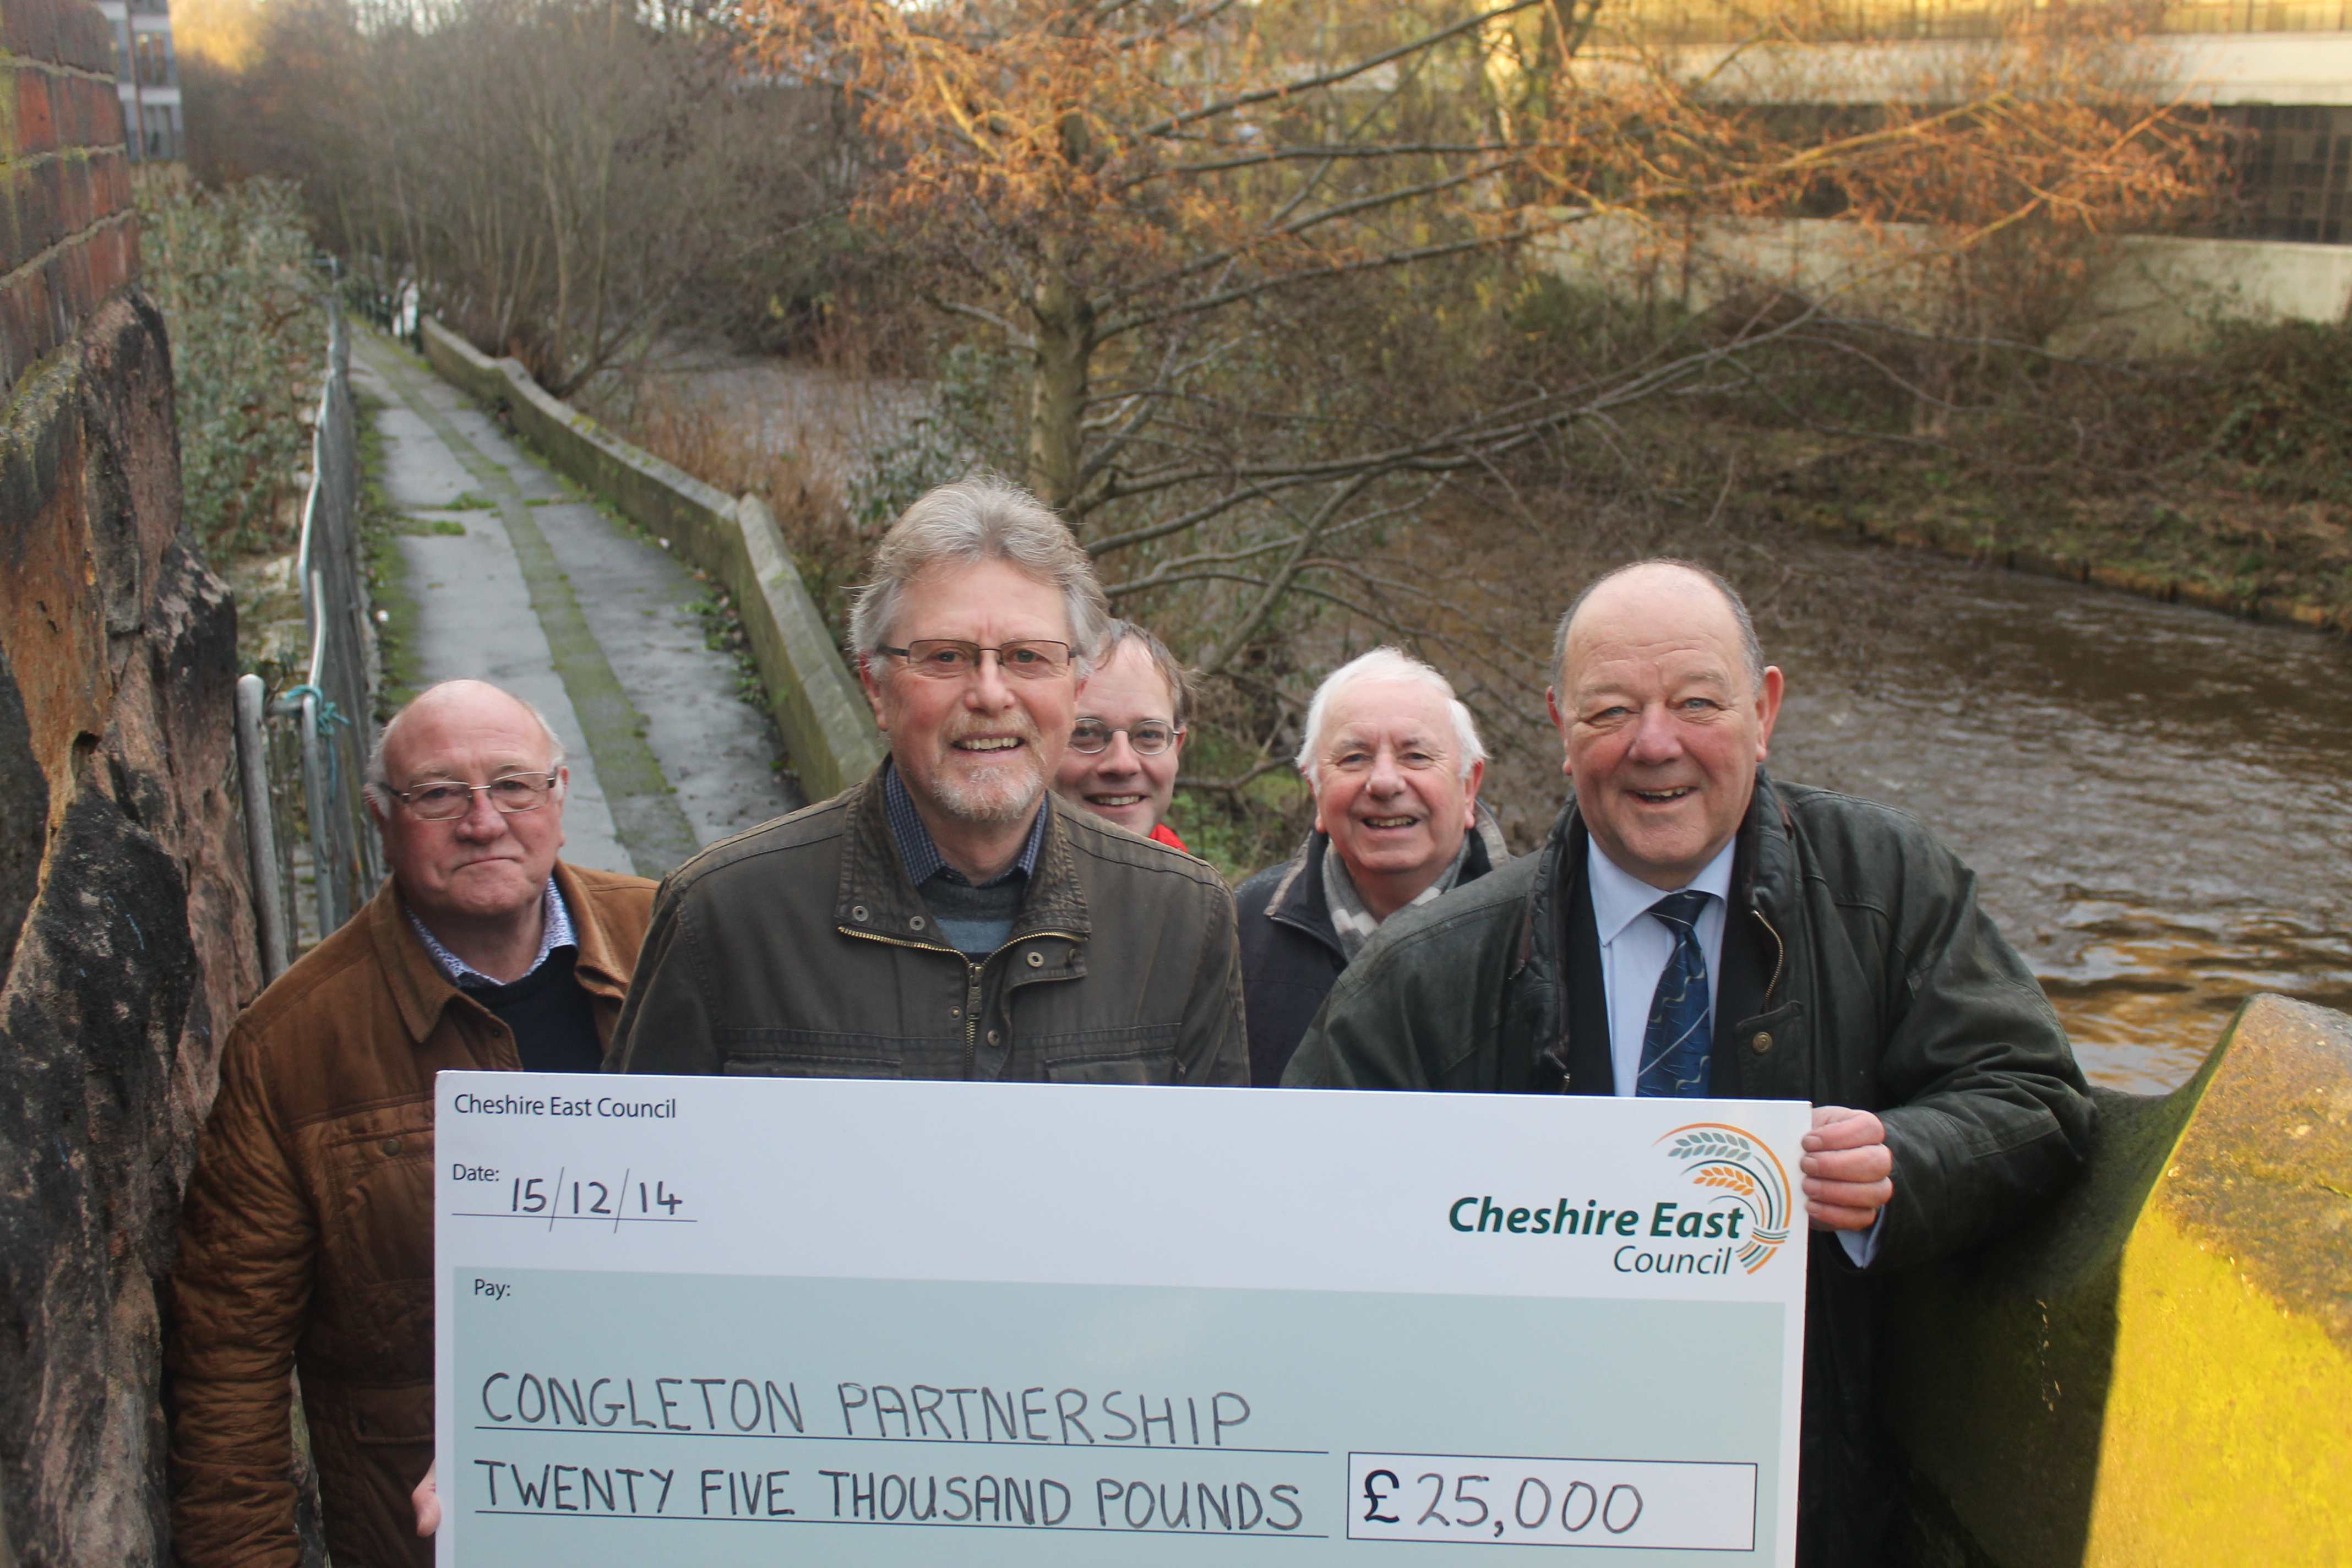 Cheshire East has made a very welcome contribution of £25,000 towards the cost of the project